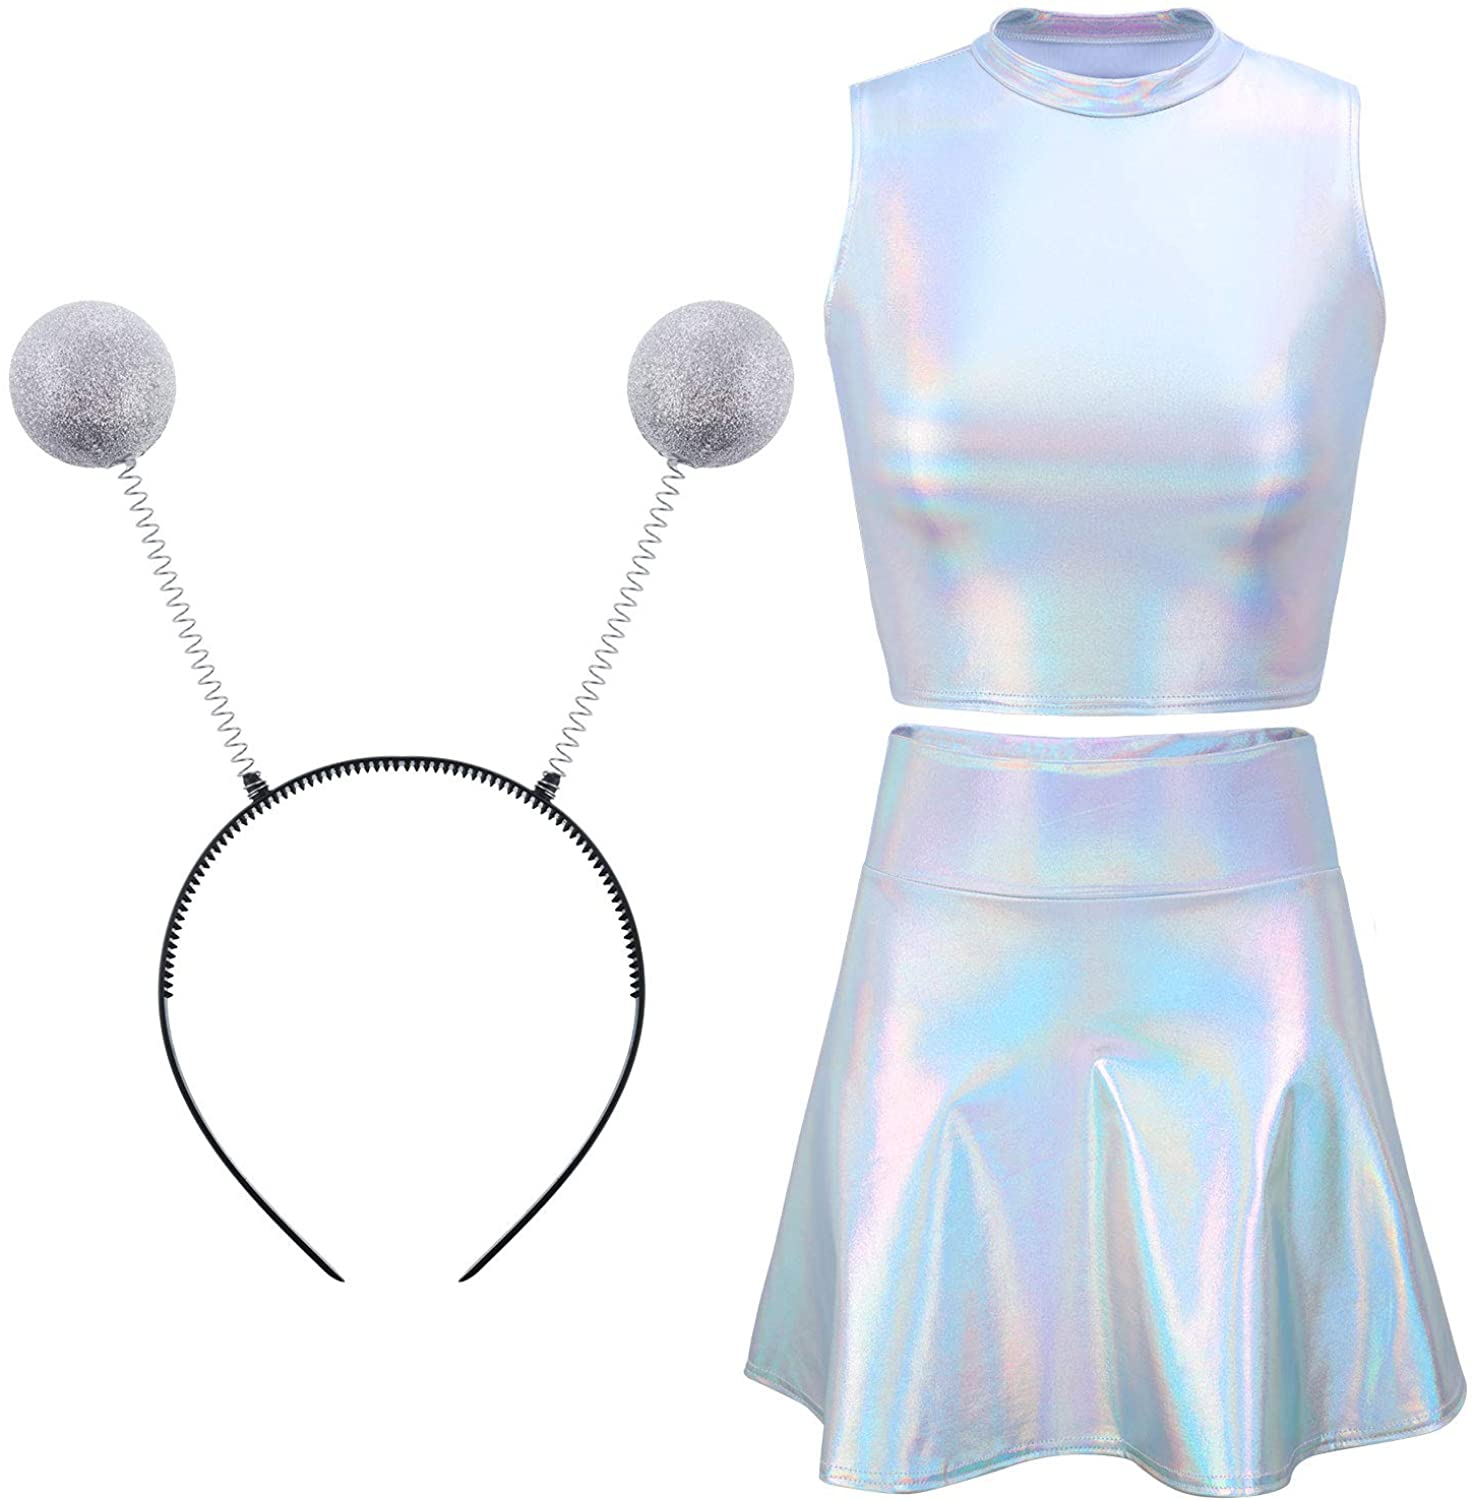 SATINIOR Metallic Silver Sleeveless Crop Tank Top Pleated Skirt Antenna Headband